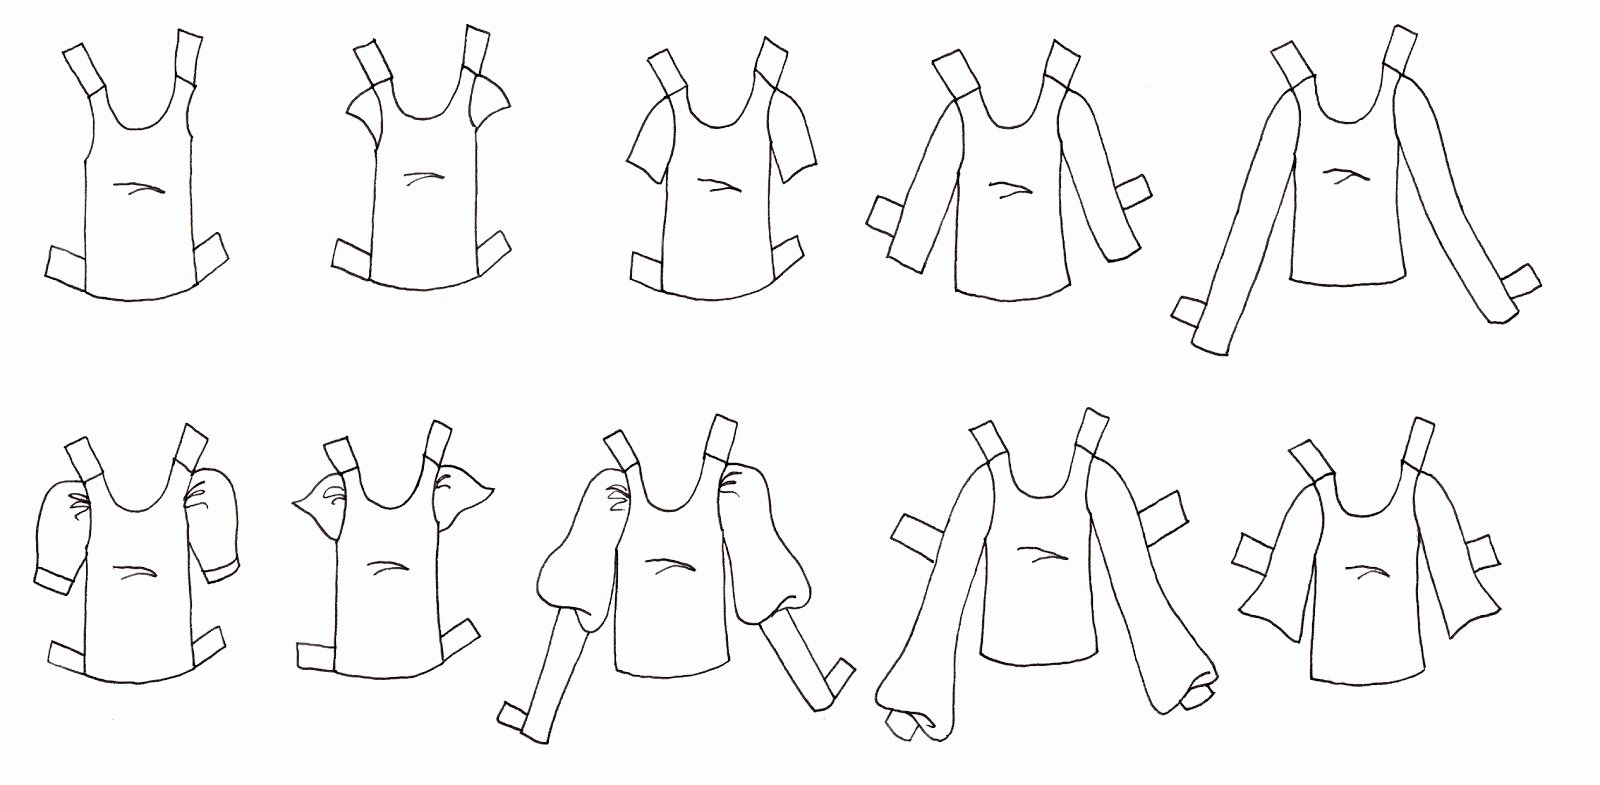 Paper Doll Clothing Template Lovely Paper Doll School Creating Versatile Clothing Templates